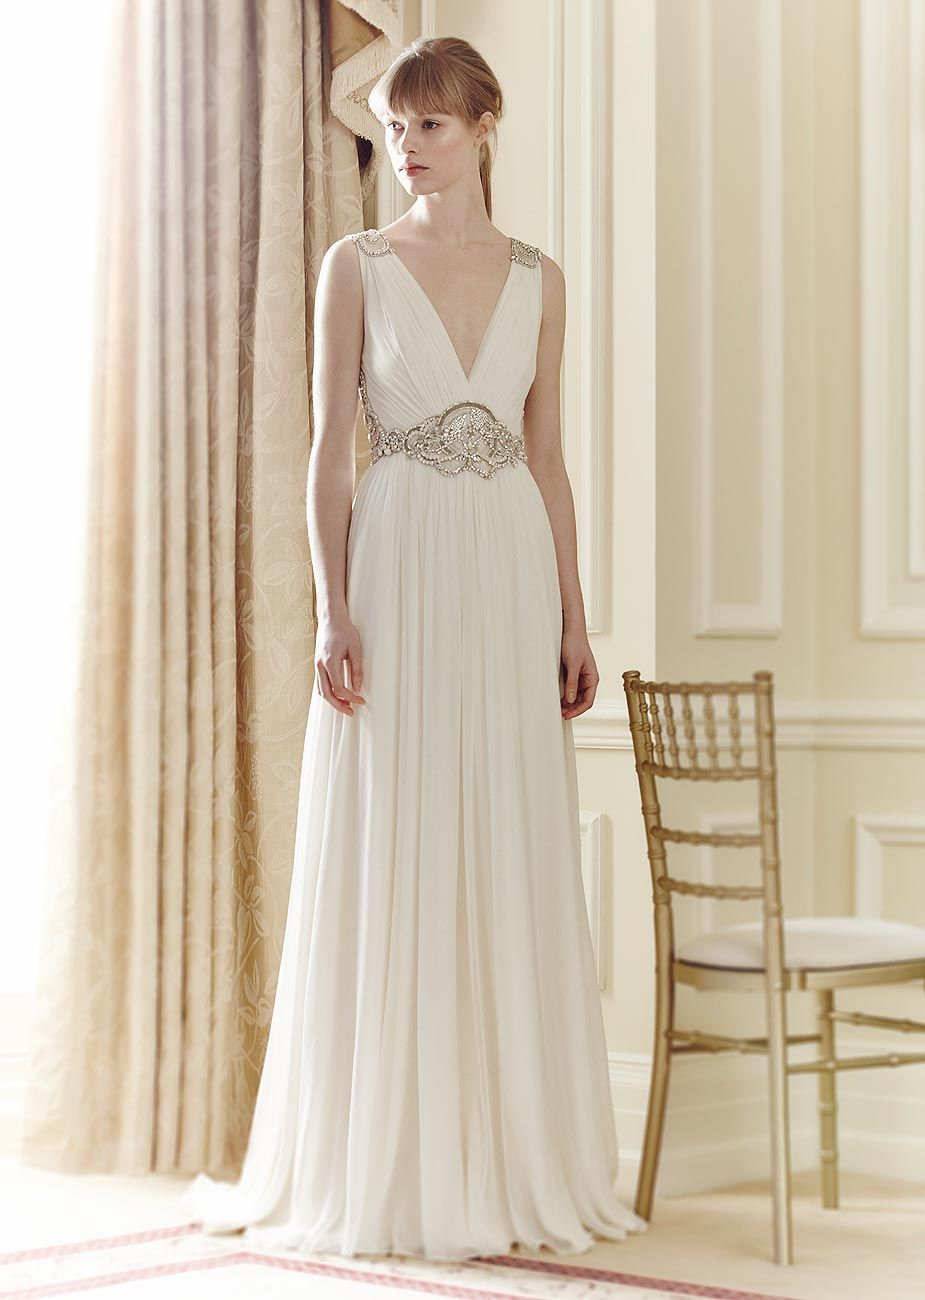 Daphne by jenny packham available at canterbury boutique teokath of